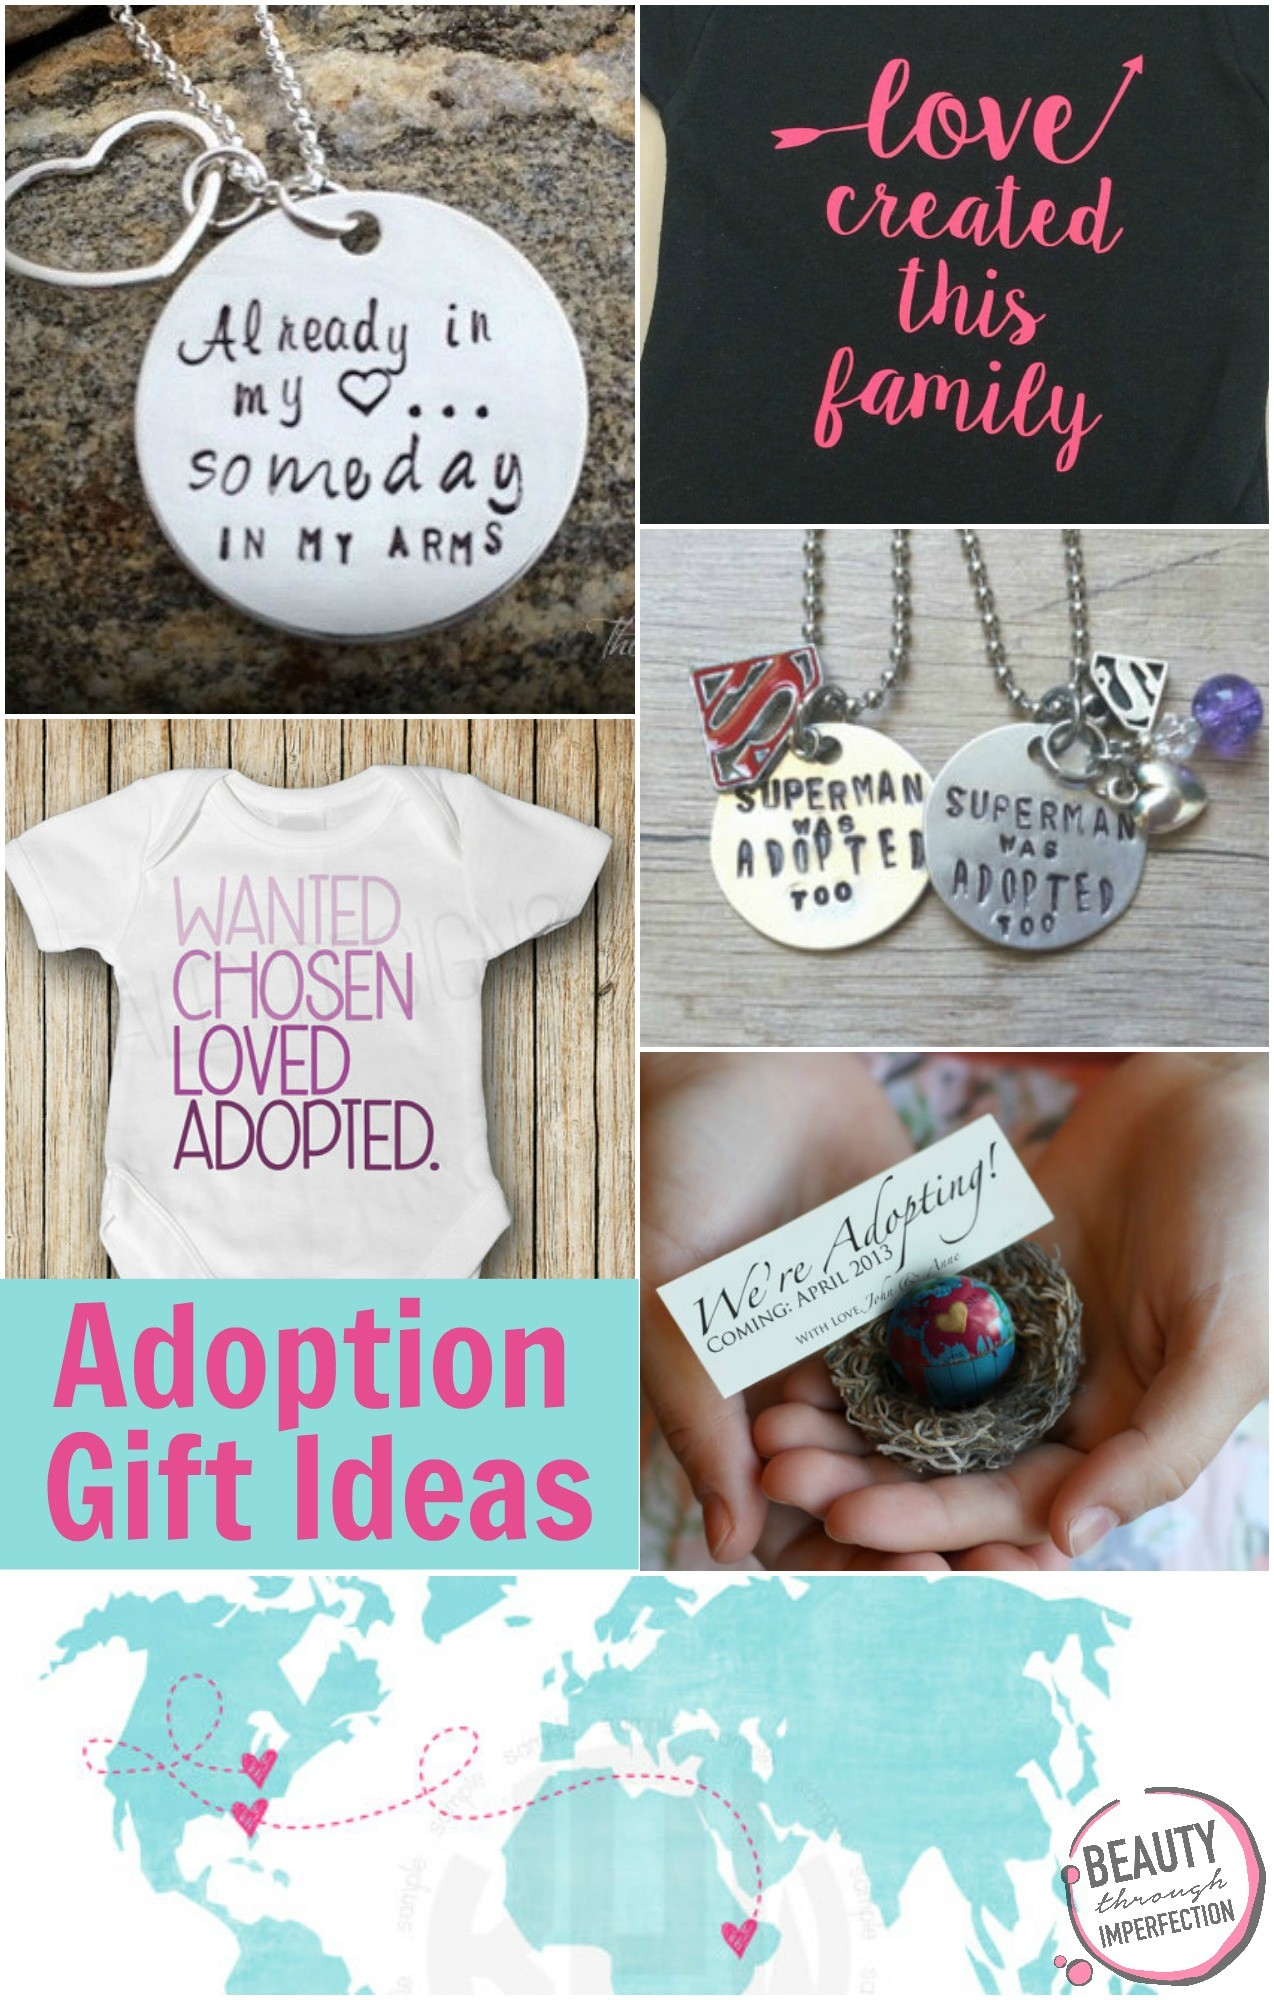 Beautiful Gift Ideas for Adoptive Parents - Beauty Through ...